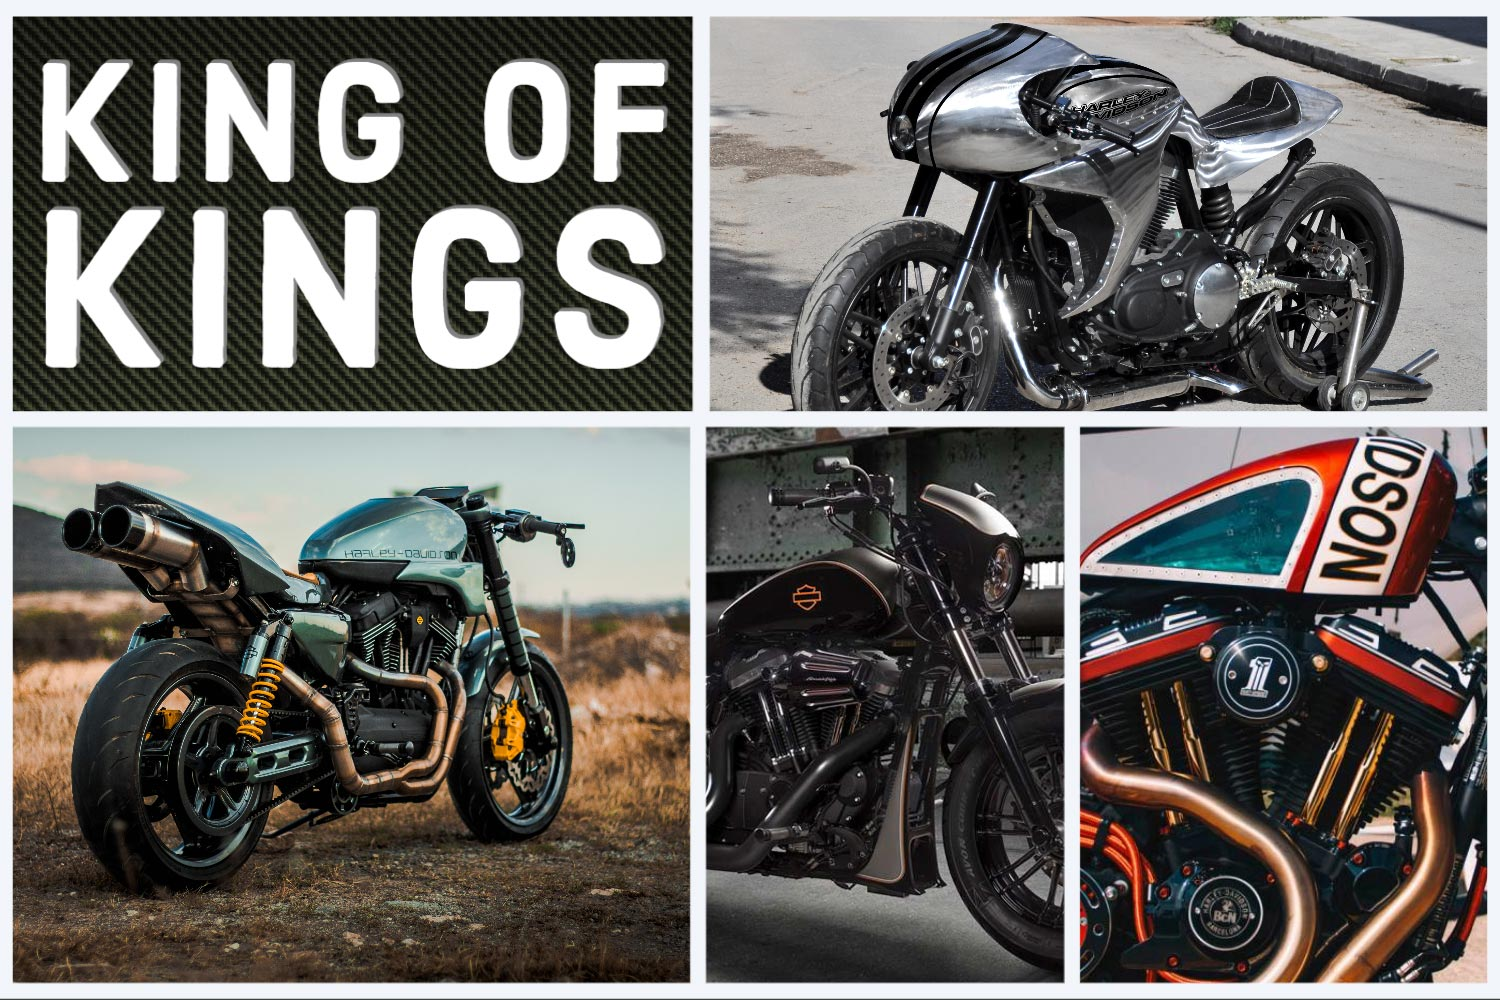 KING OF KINGS 2020 Battle auf Sportster Basis